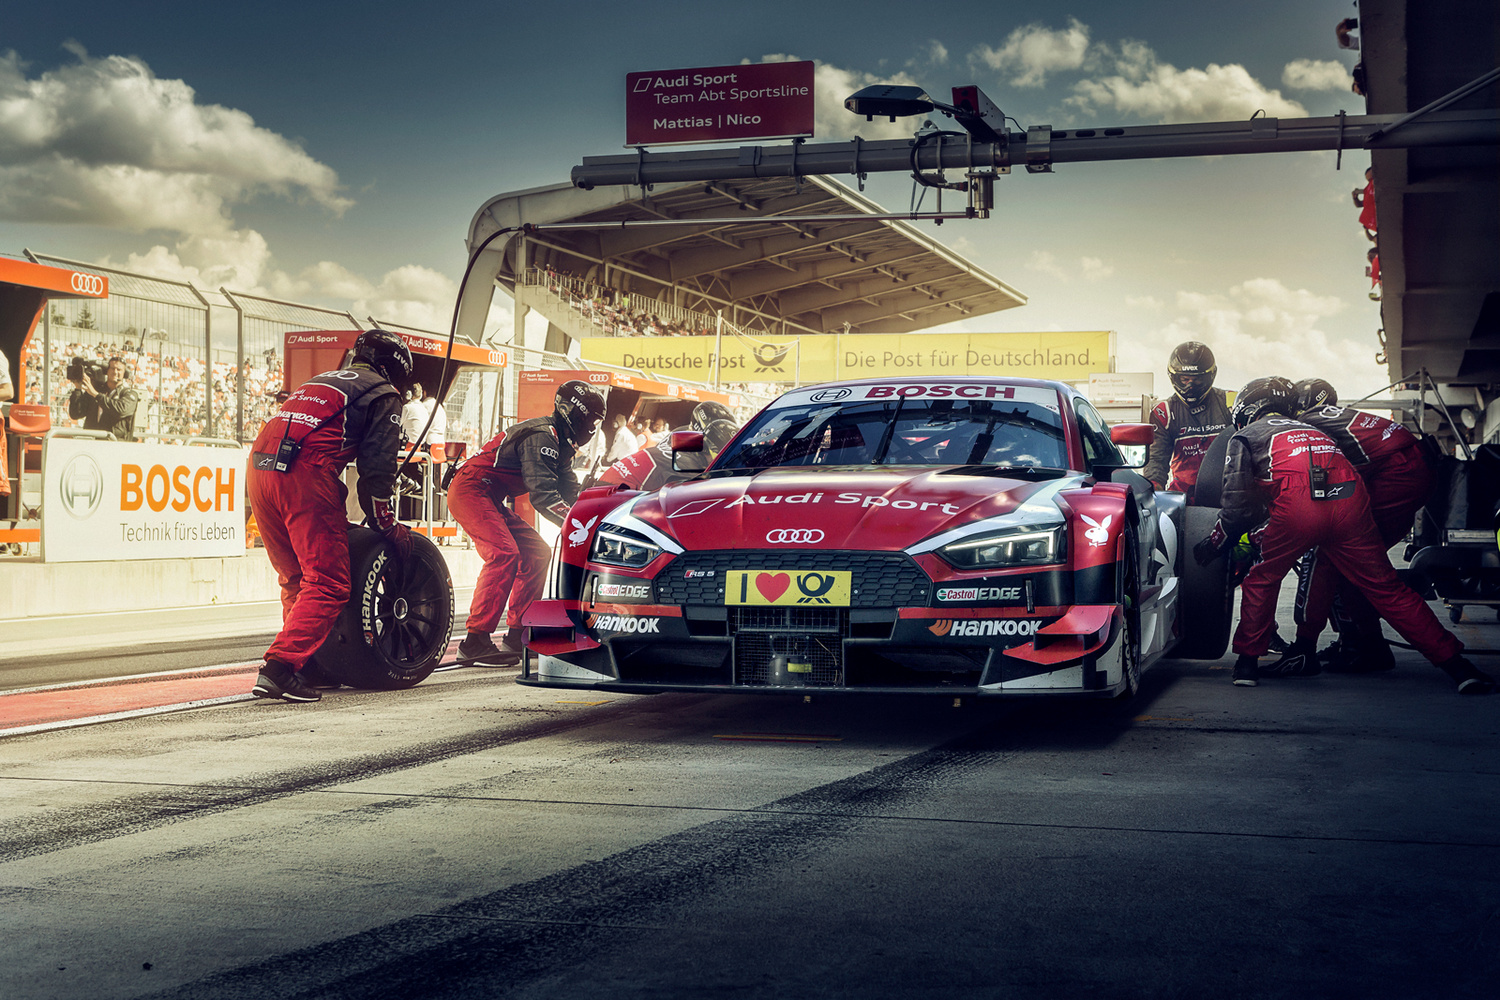 Last Pitstop of the race by Roman Lavrov